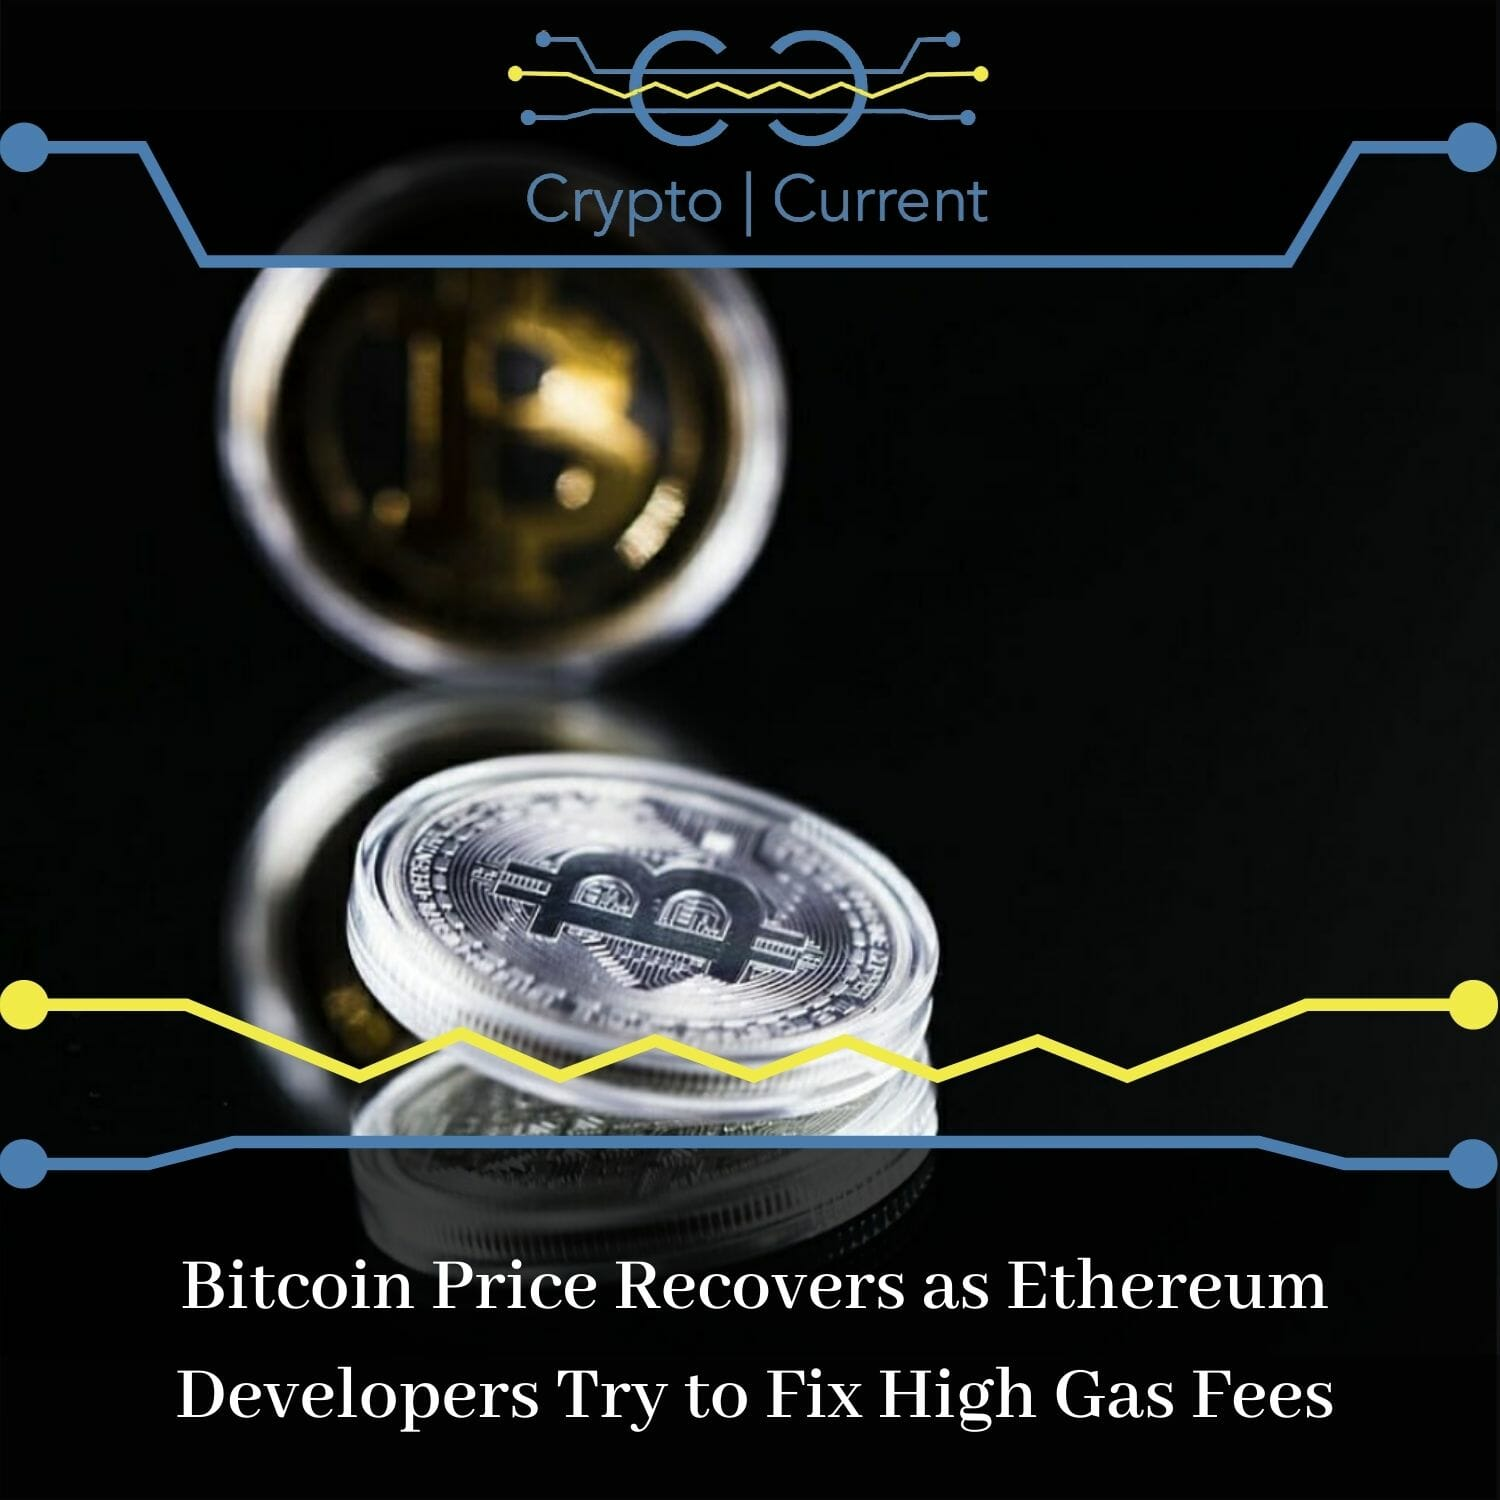 Bitcoin Price Recovers as Ethereum Developers Try to Fix High Gas Fees, IOTA and ATOM Post Decent Gains